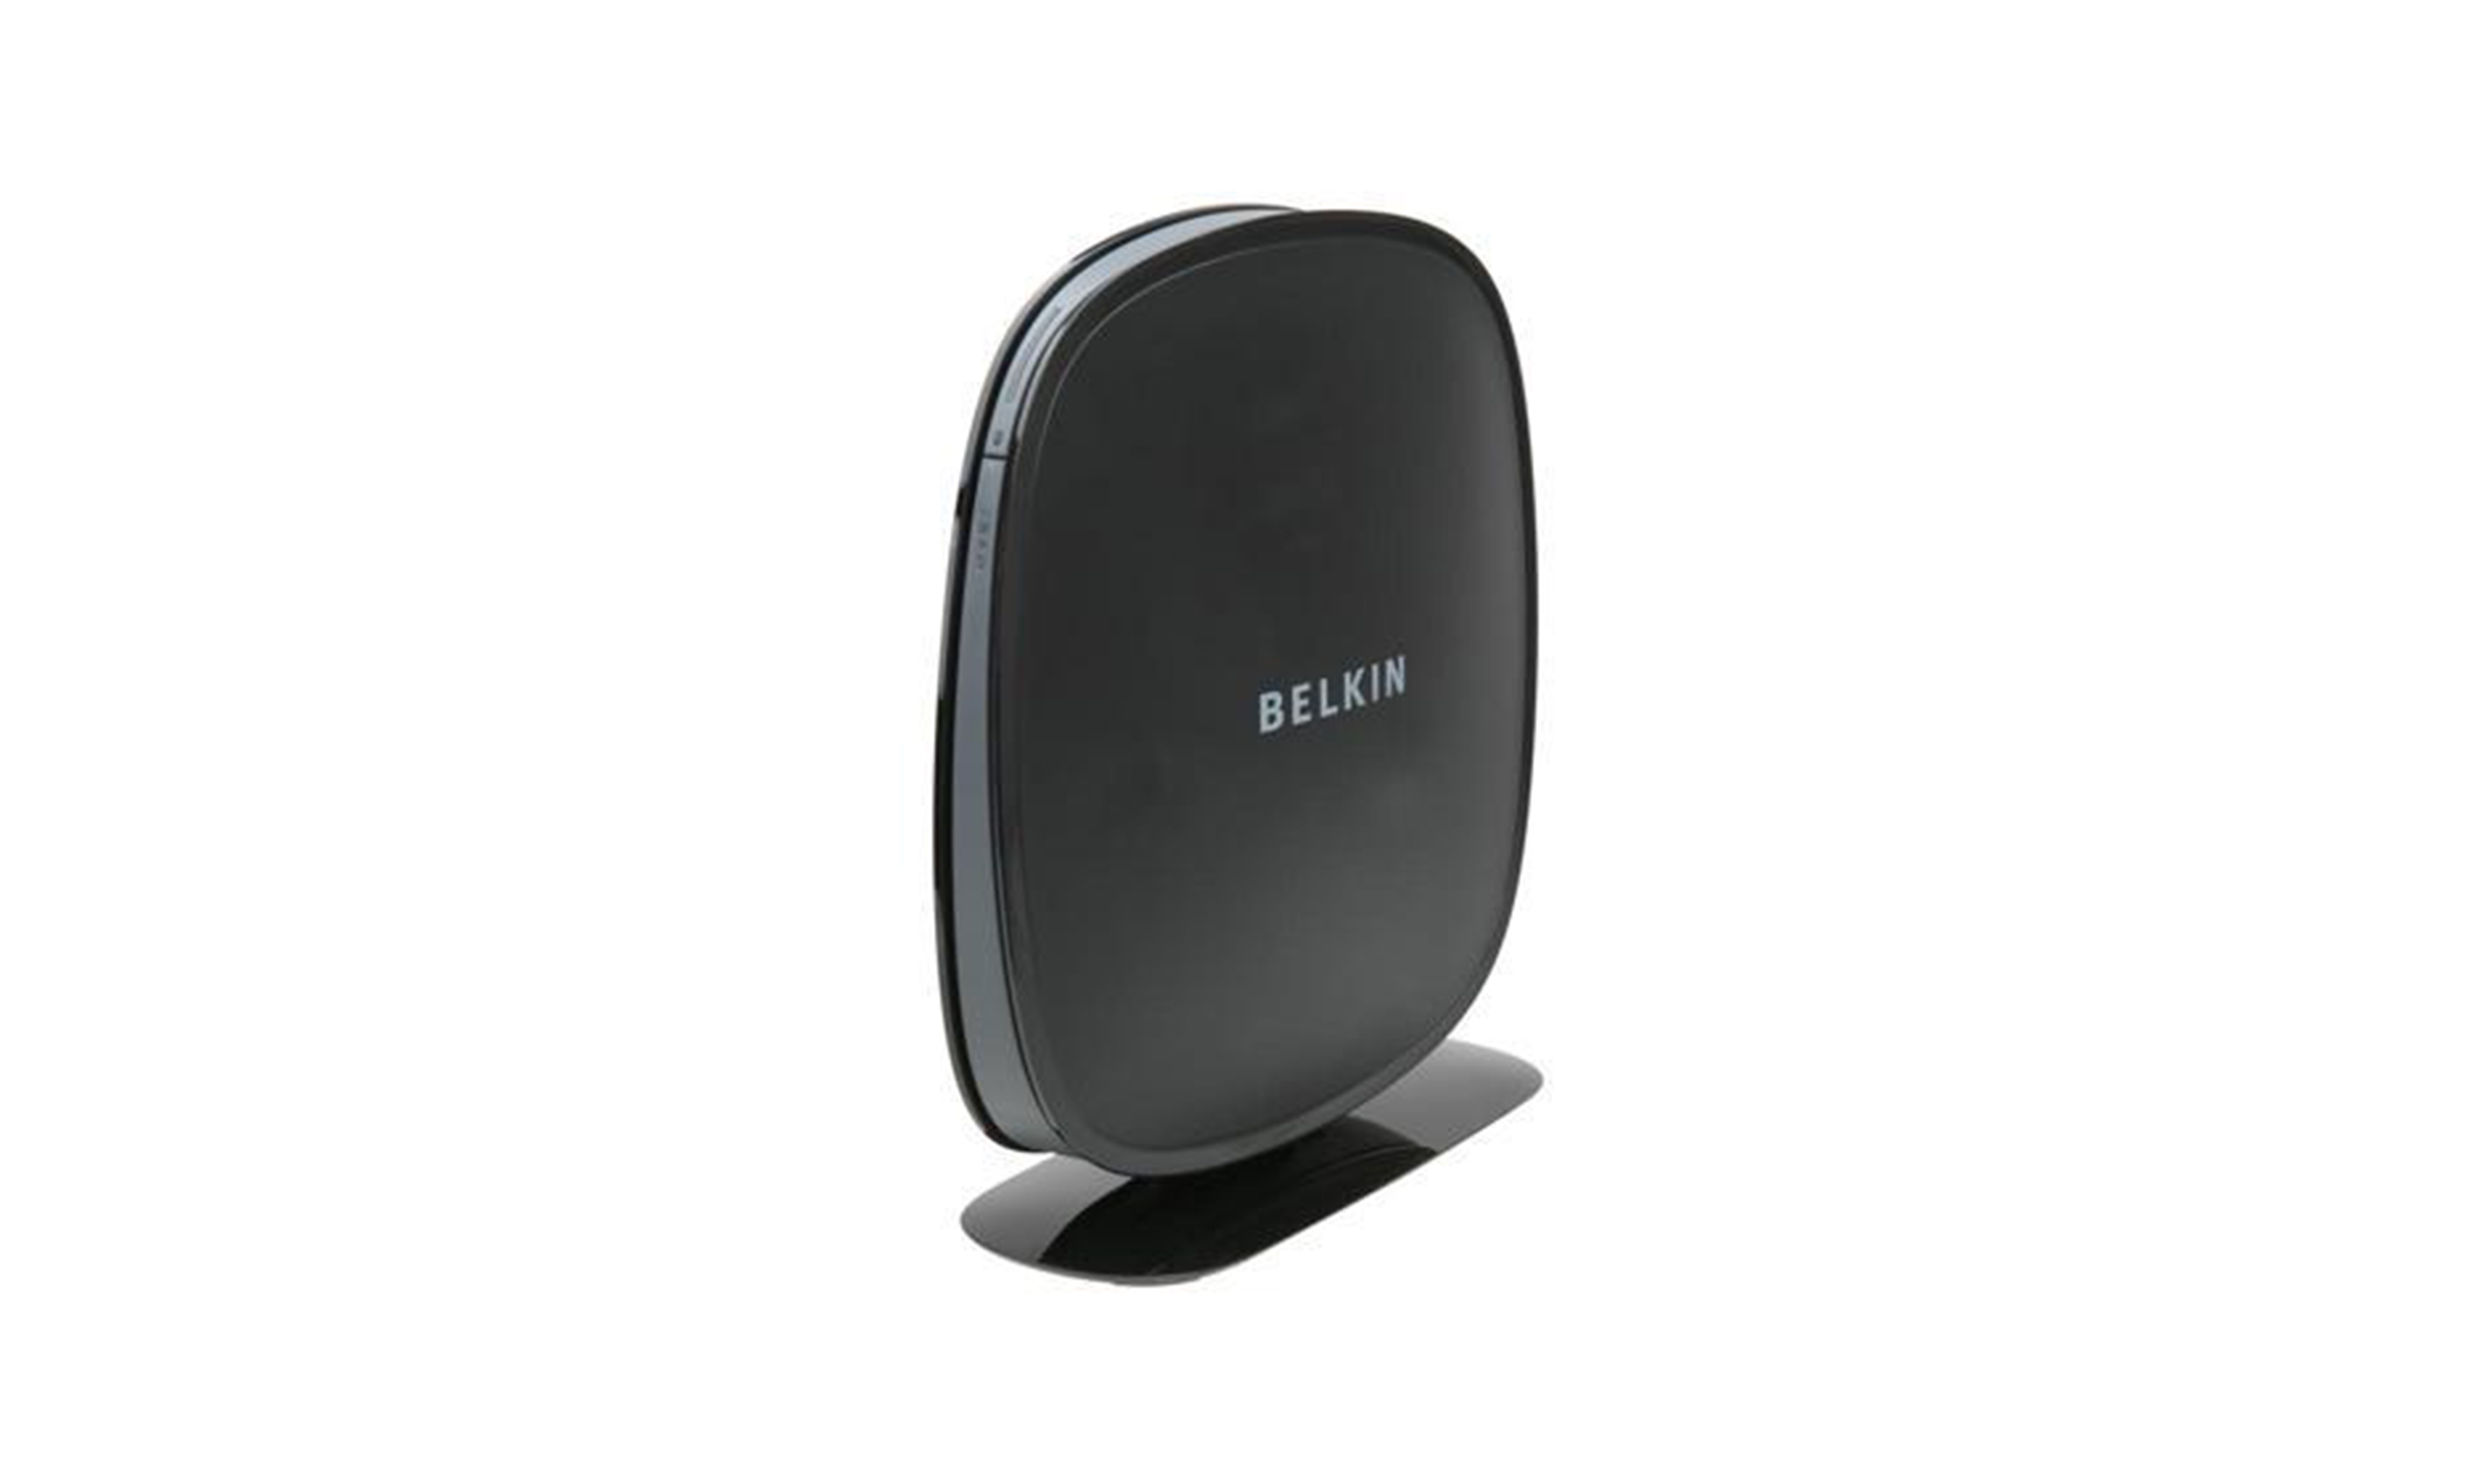 The Belkin N450 Router Review